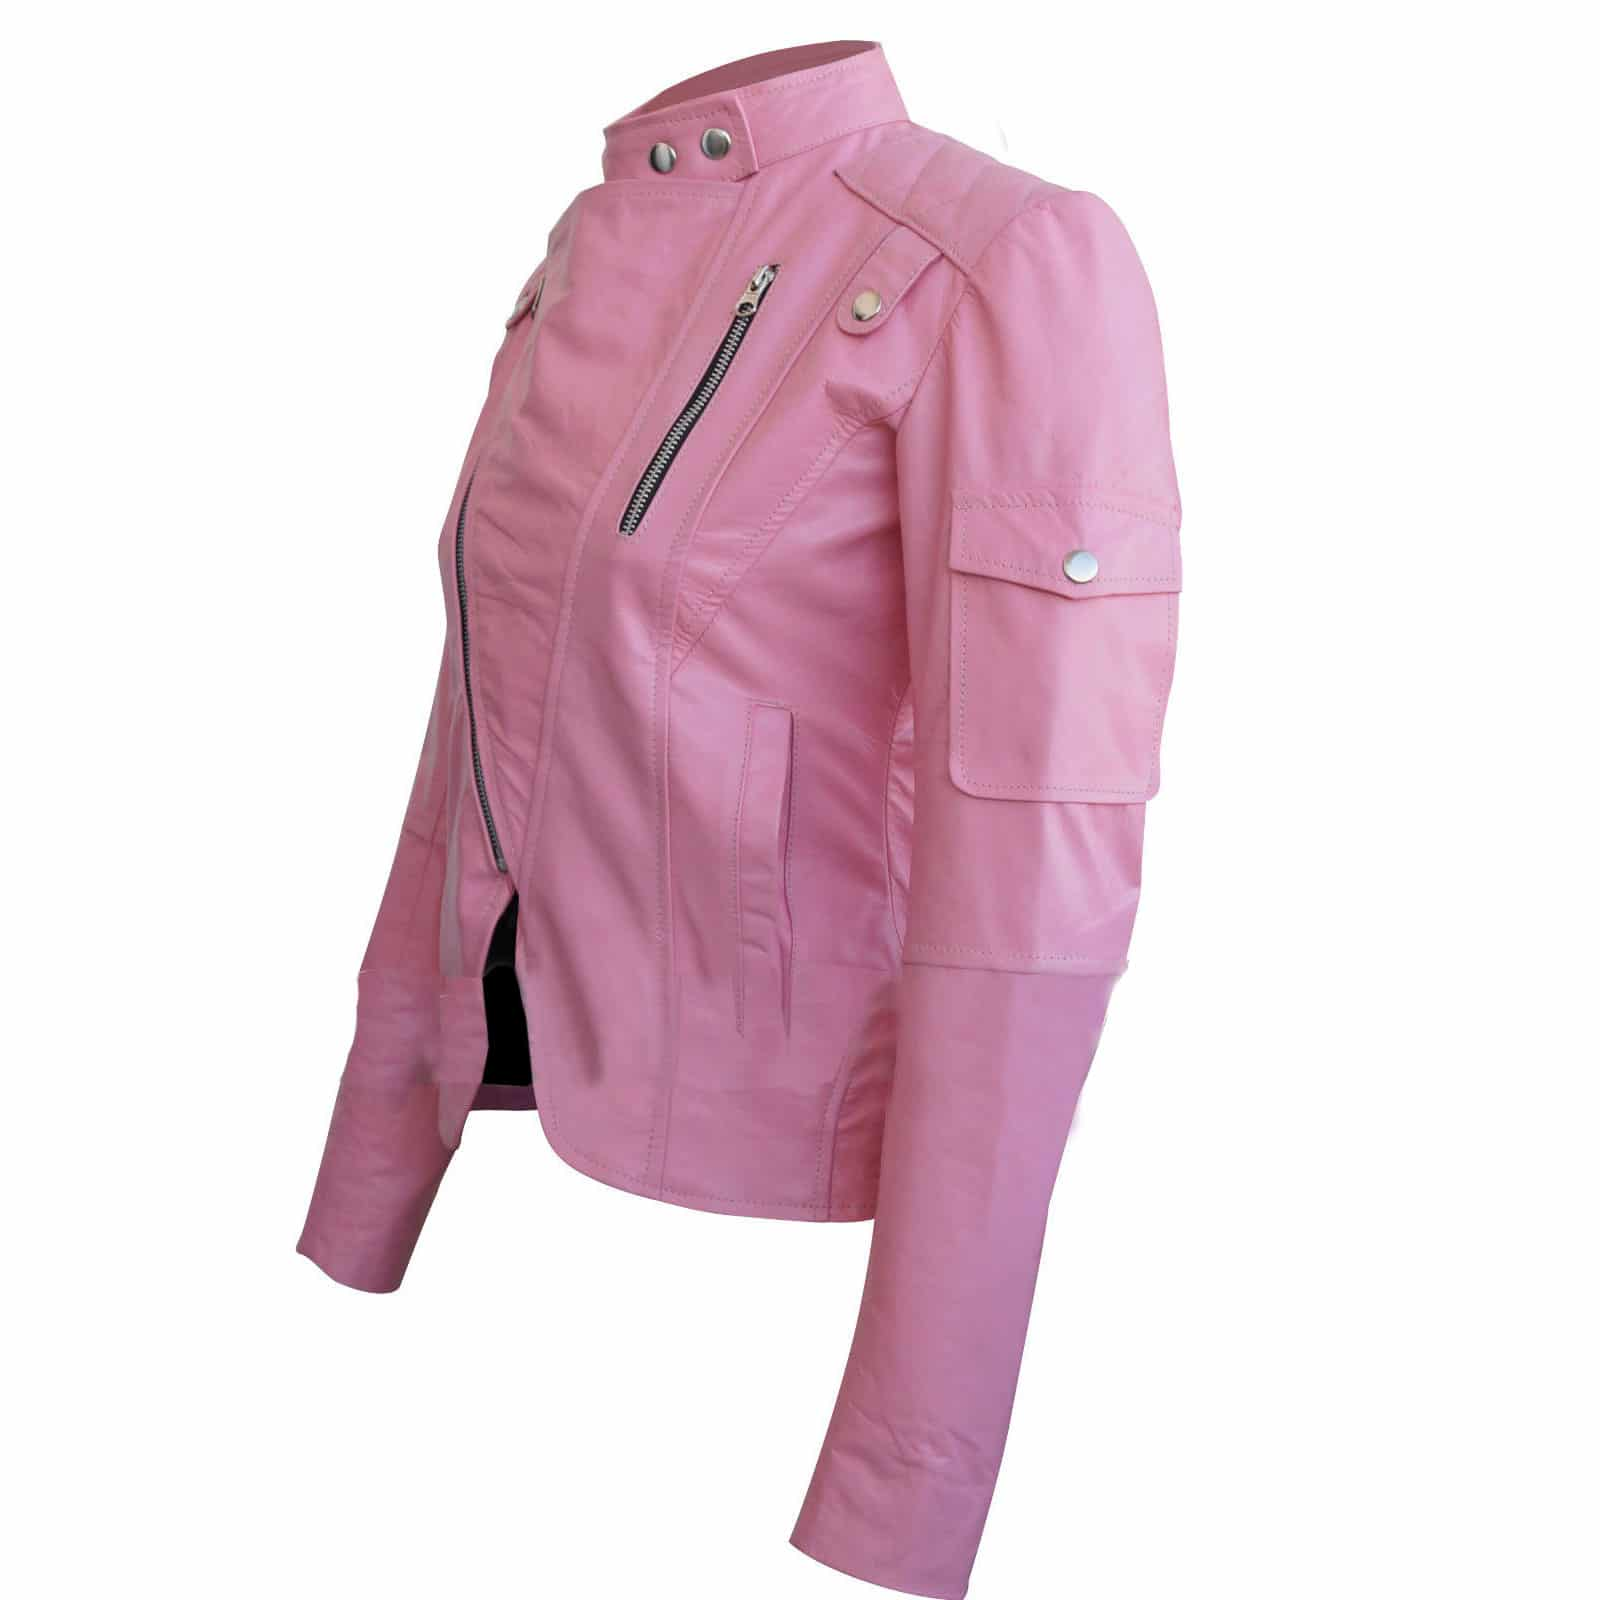 Pink Leather Jacket for sale